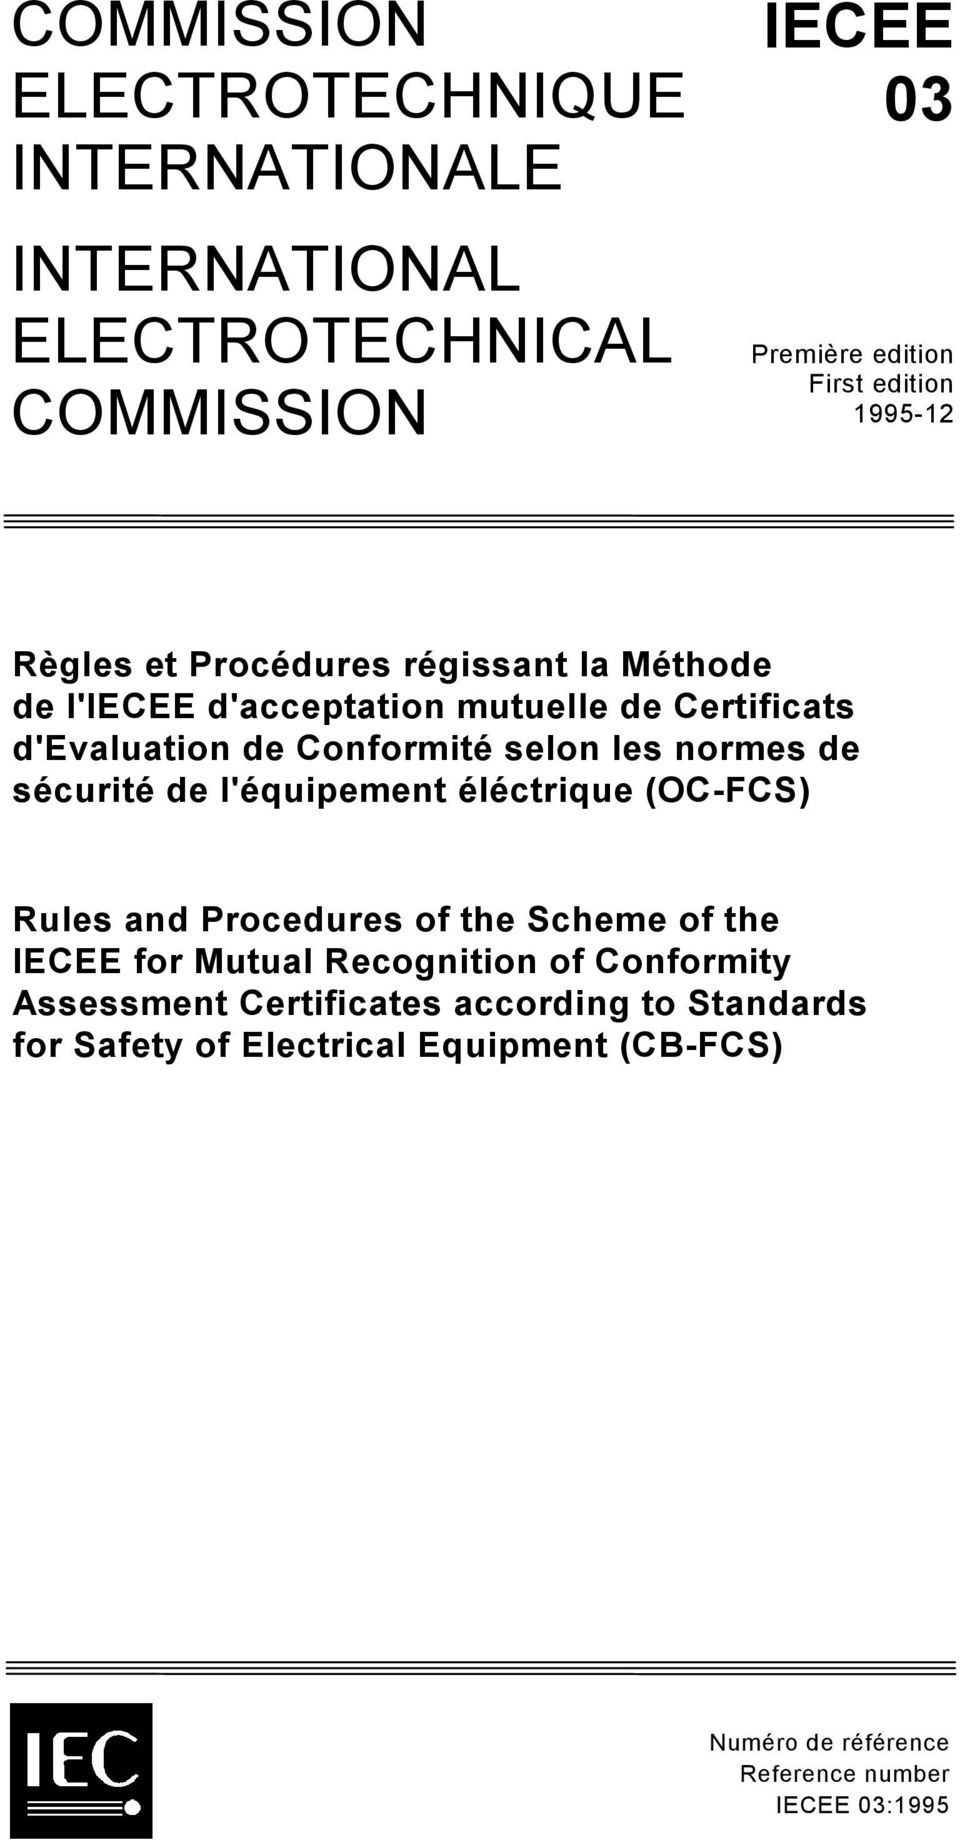 de sécurité de l'équipement éléctrique (OC-FCS) Rules and Procedures of the Scheme of the IECEE for Mutual Recognition of Conformity